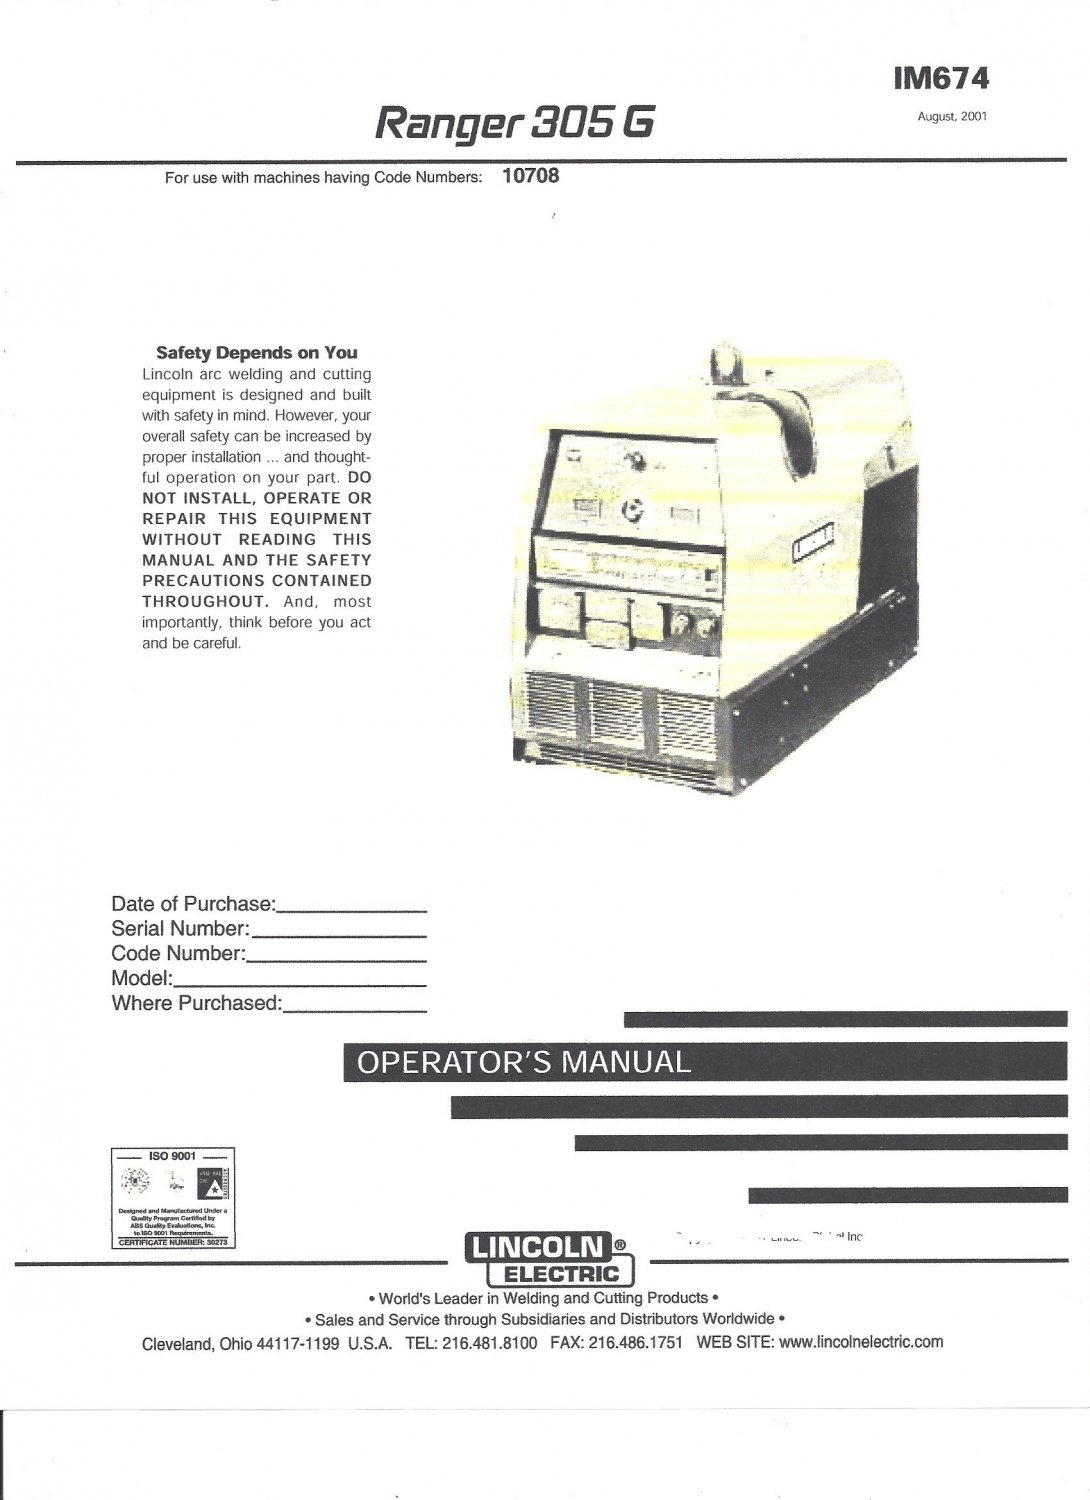 Lincoln Electric Ranger 305 G Welder Operator S Manual Copy